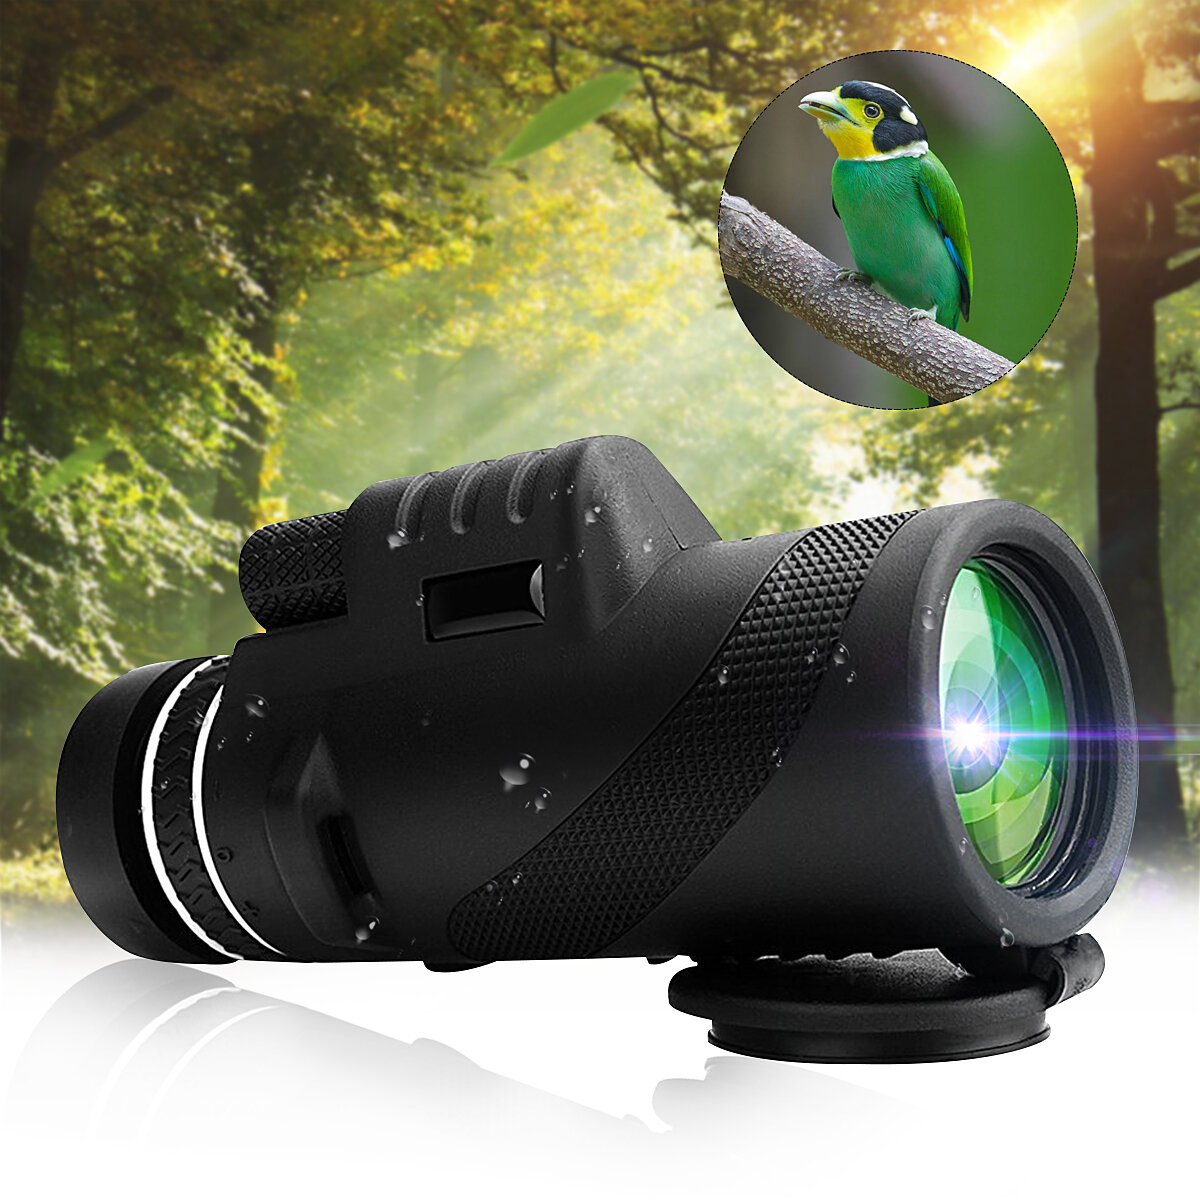 IPRee® 40x60 Outdoor Portable Monocular HD Optic Day Night Vision Telescope Camping Hiking